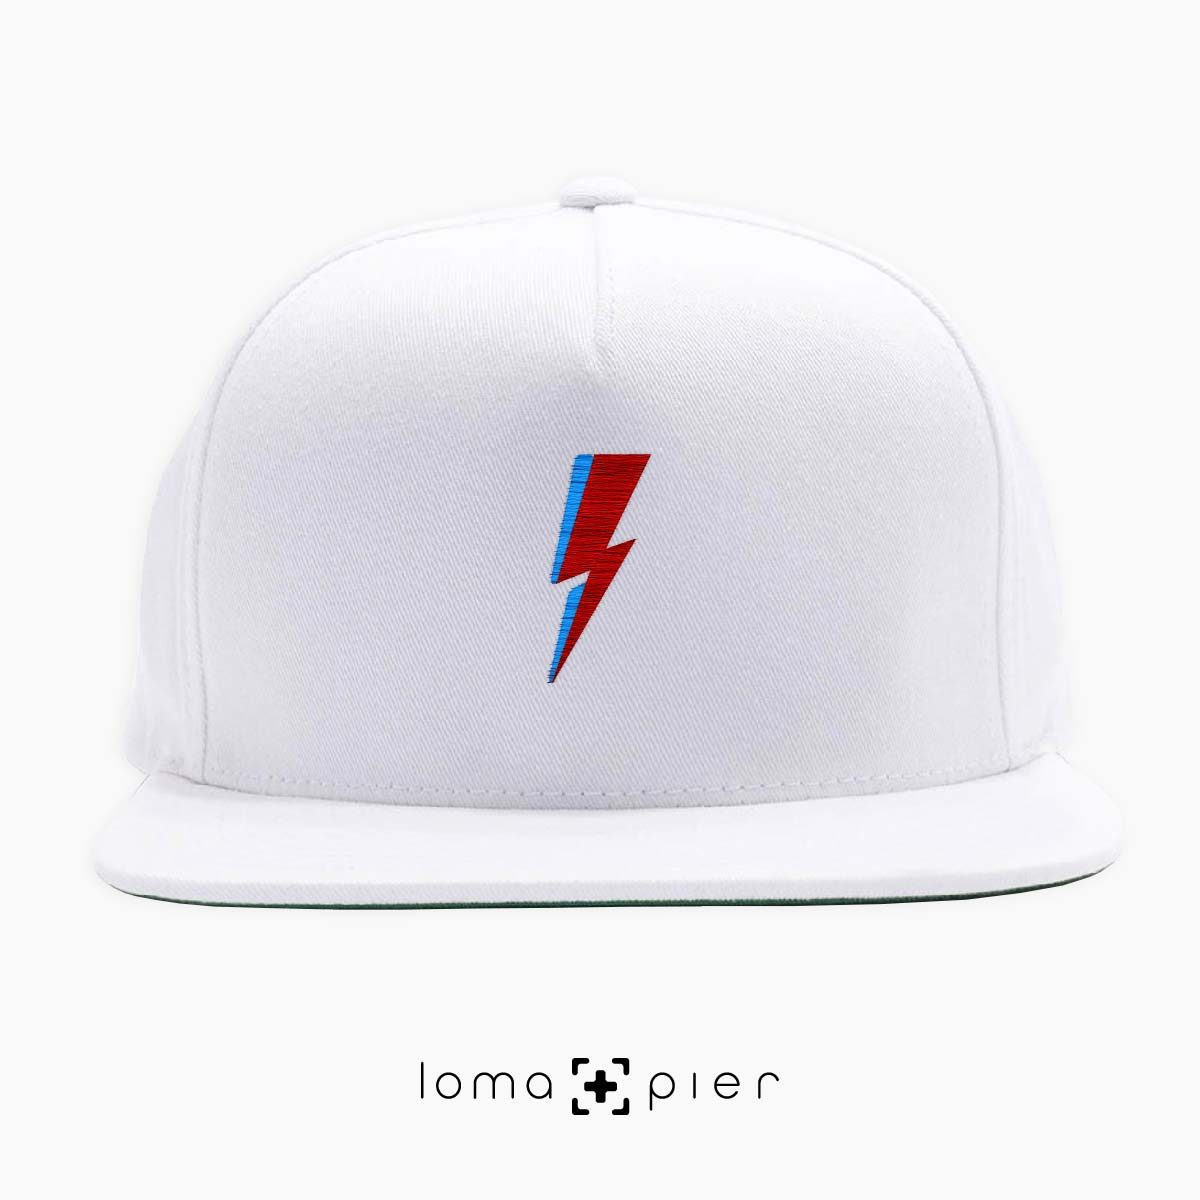 LIGHTNING BOLT icon embroidered on a white classic snapback hat with multicolor thread by loma+pier hat store